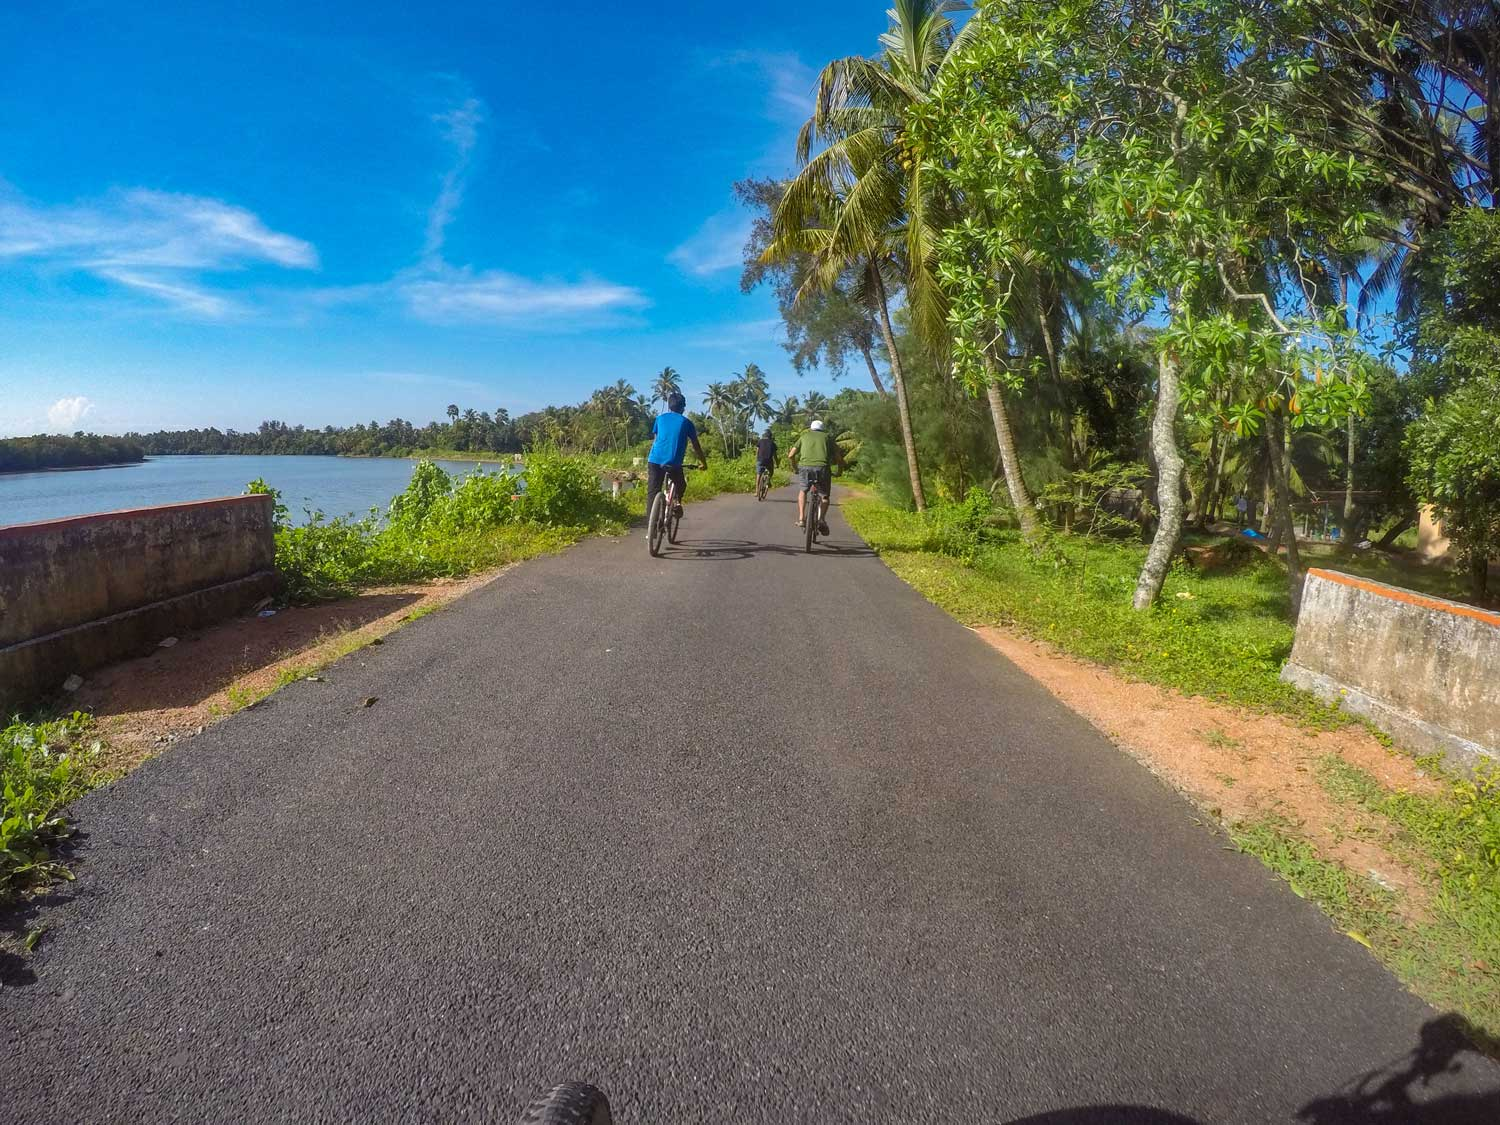 Cycling Tours Karnataka River - Cycle Odyssey